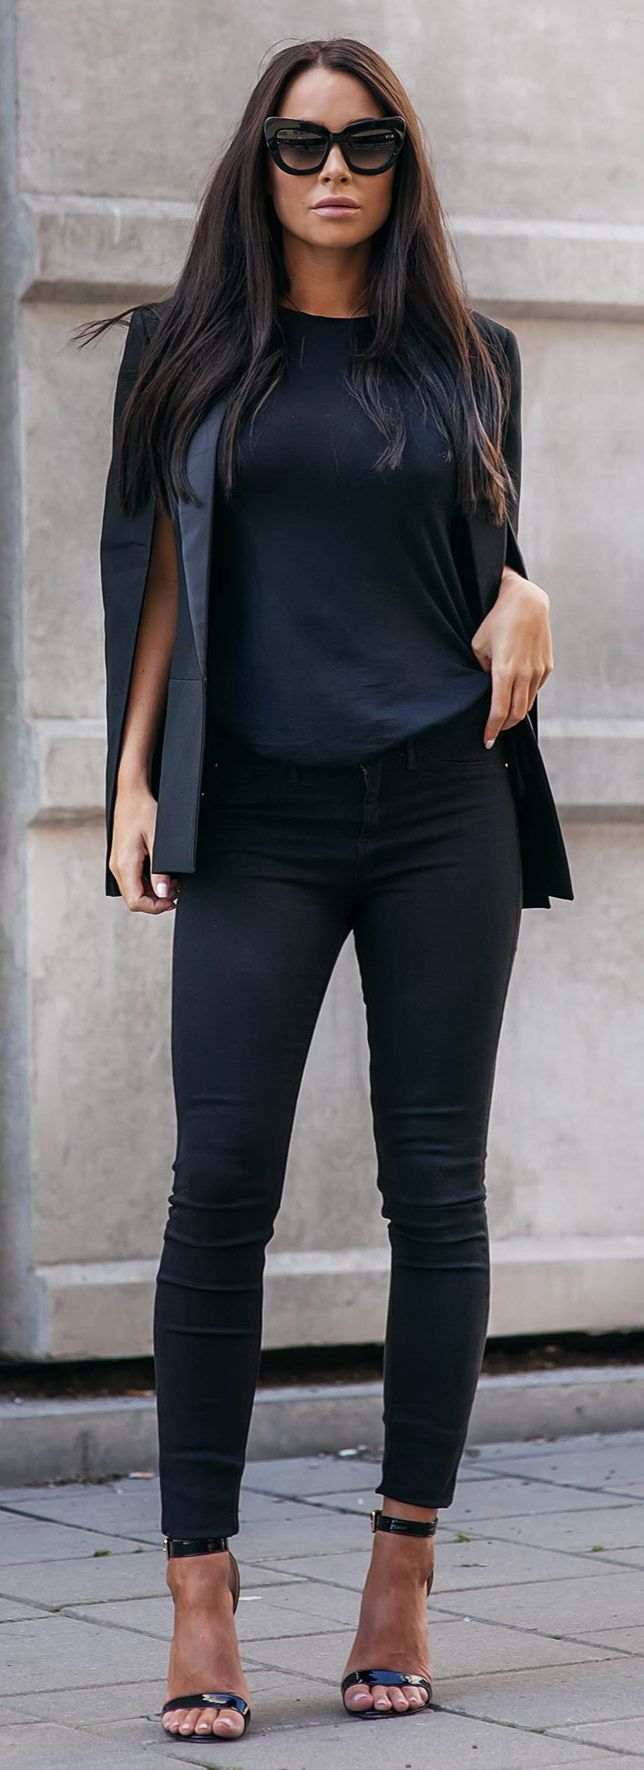 fall-outfits-street-style-2205_29.☮ re-pinned by http://www.wfpblogs.com/author/southfloridah2o/